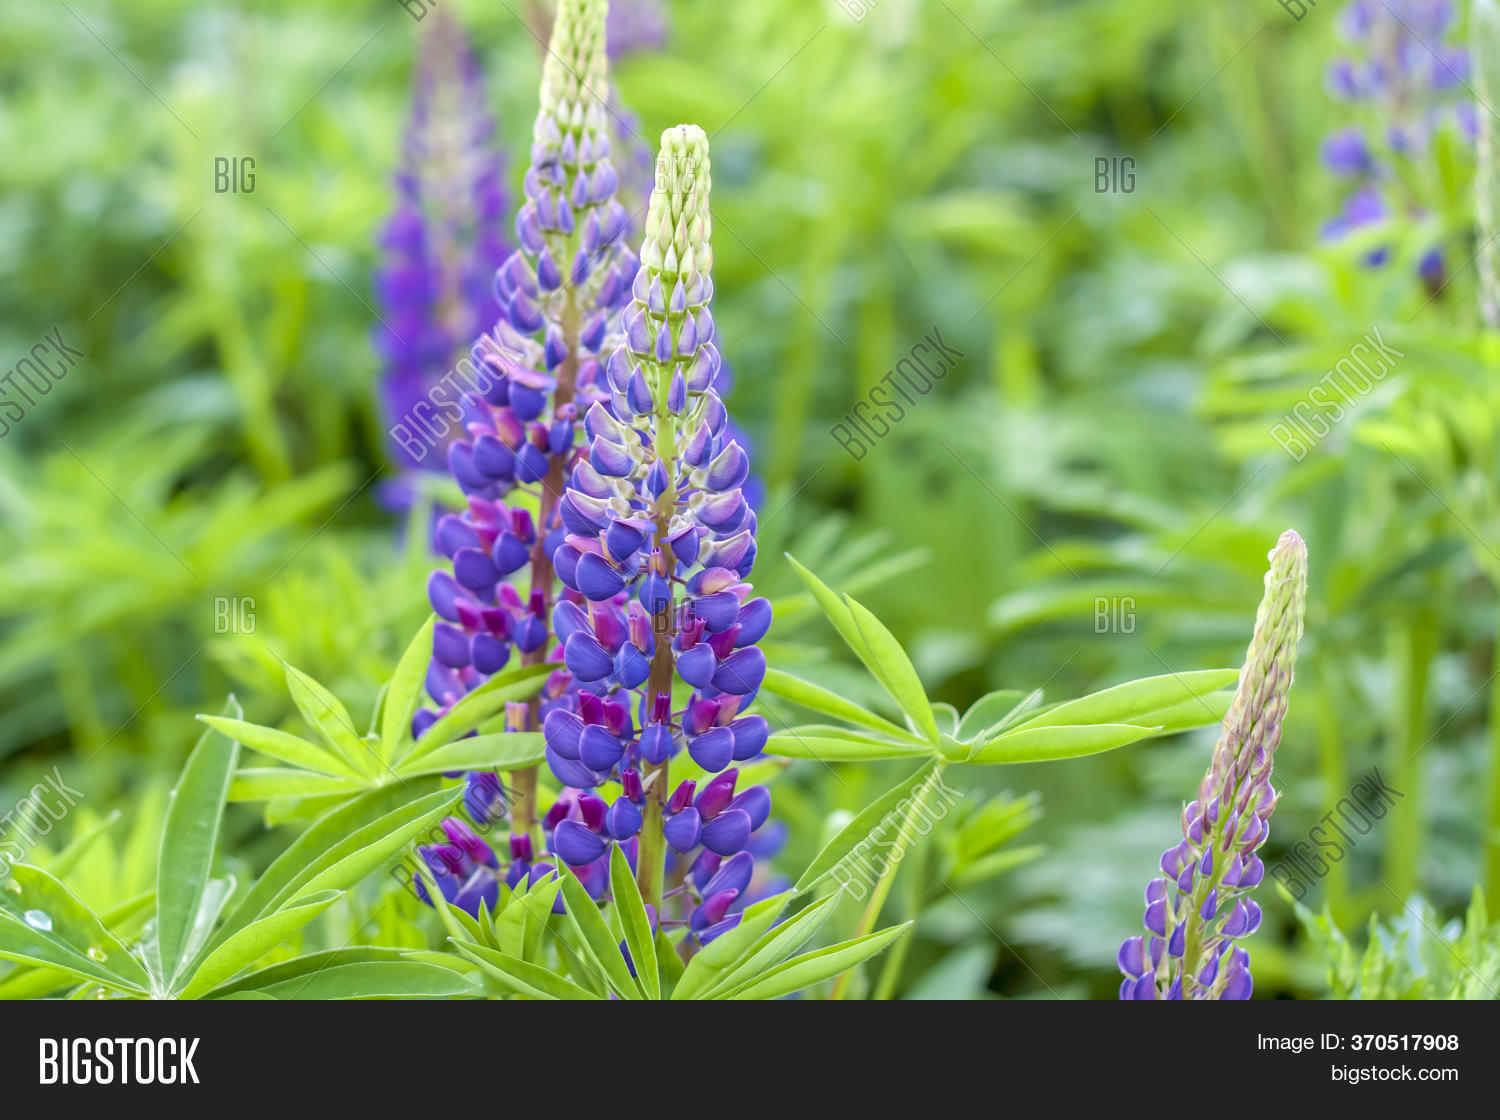 Lupin S Flower Image Photo Free Trial Bigstock